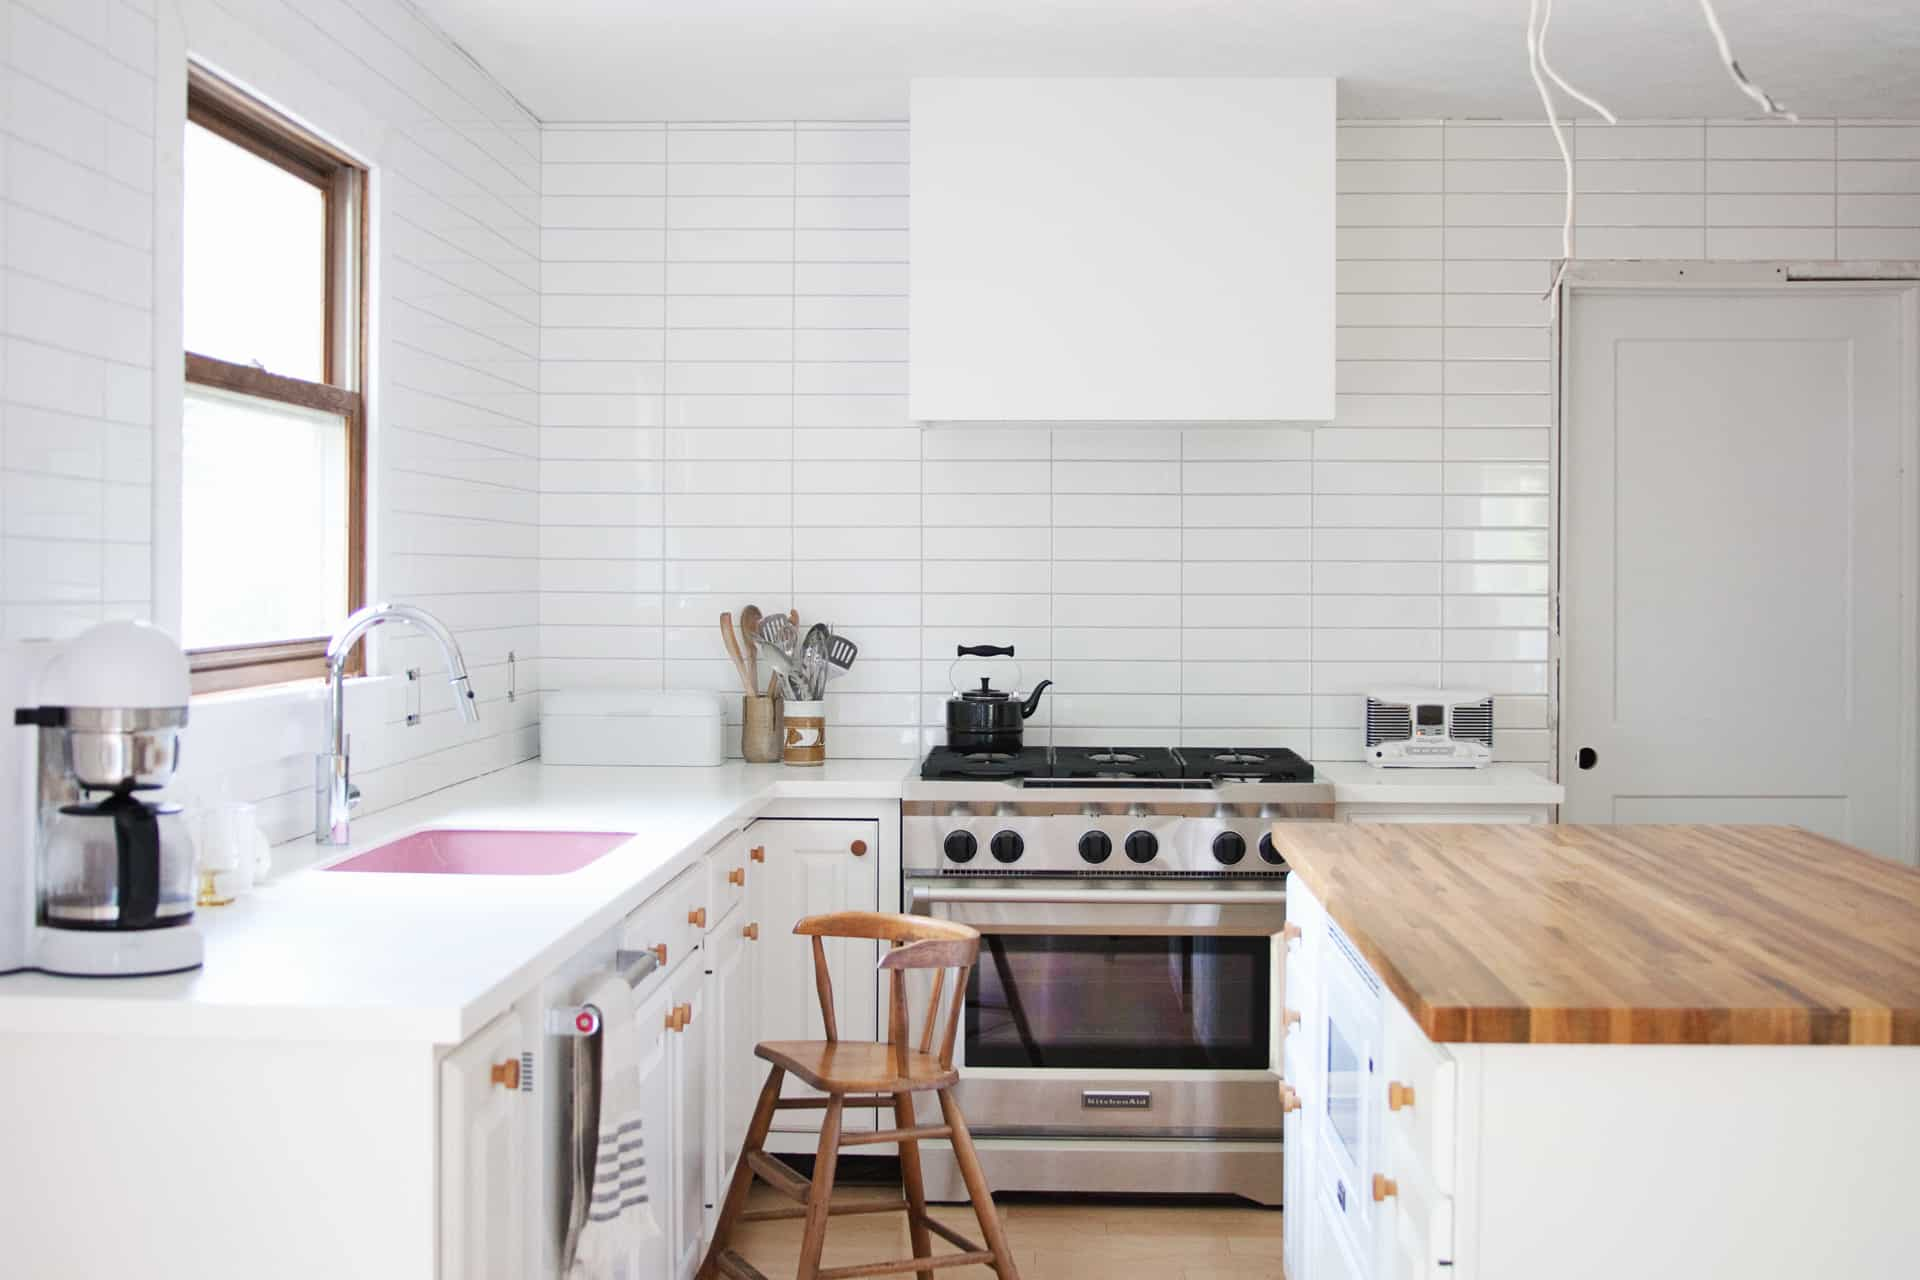 Painting Cabinets with Chalk PaintPros  Cons  A